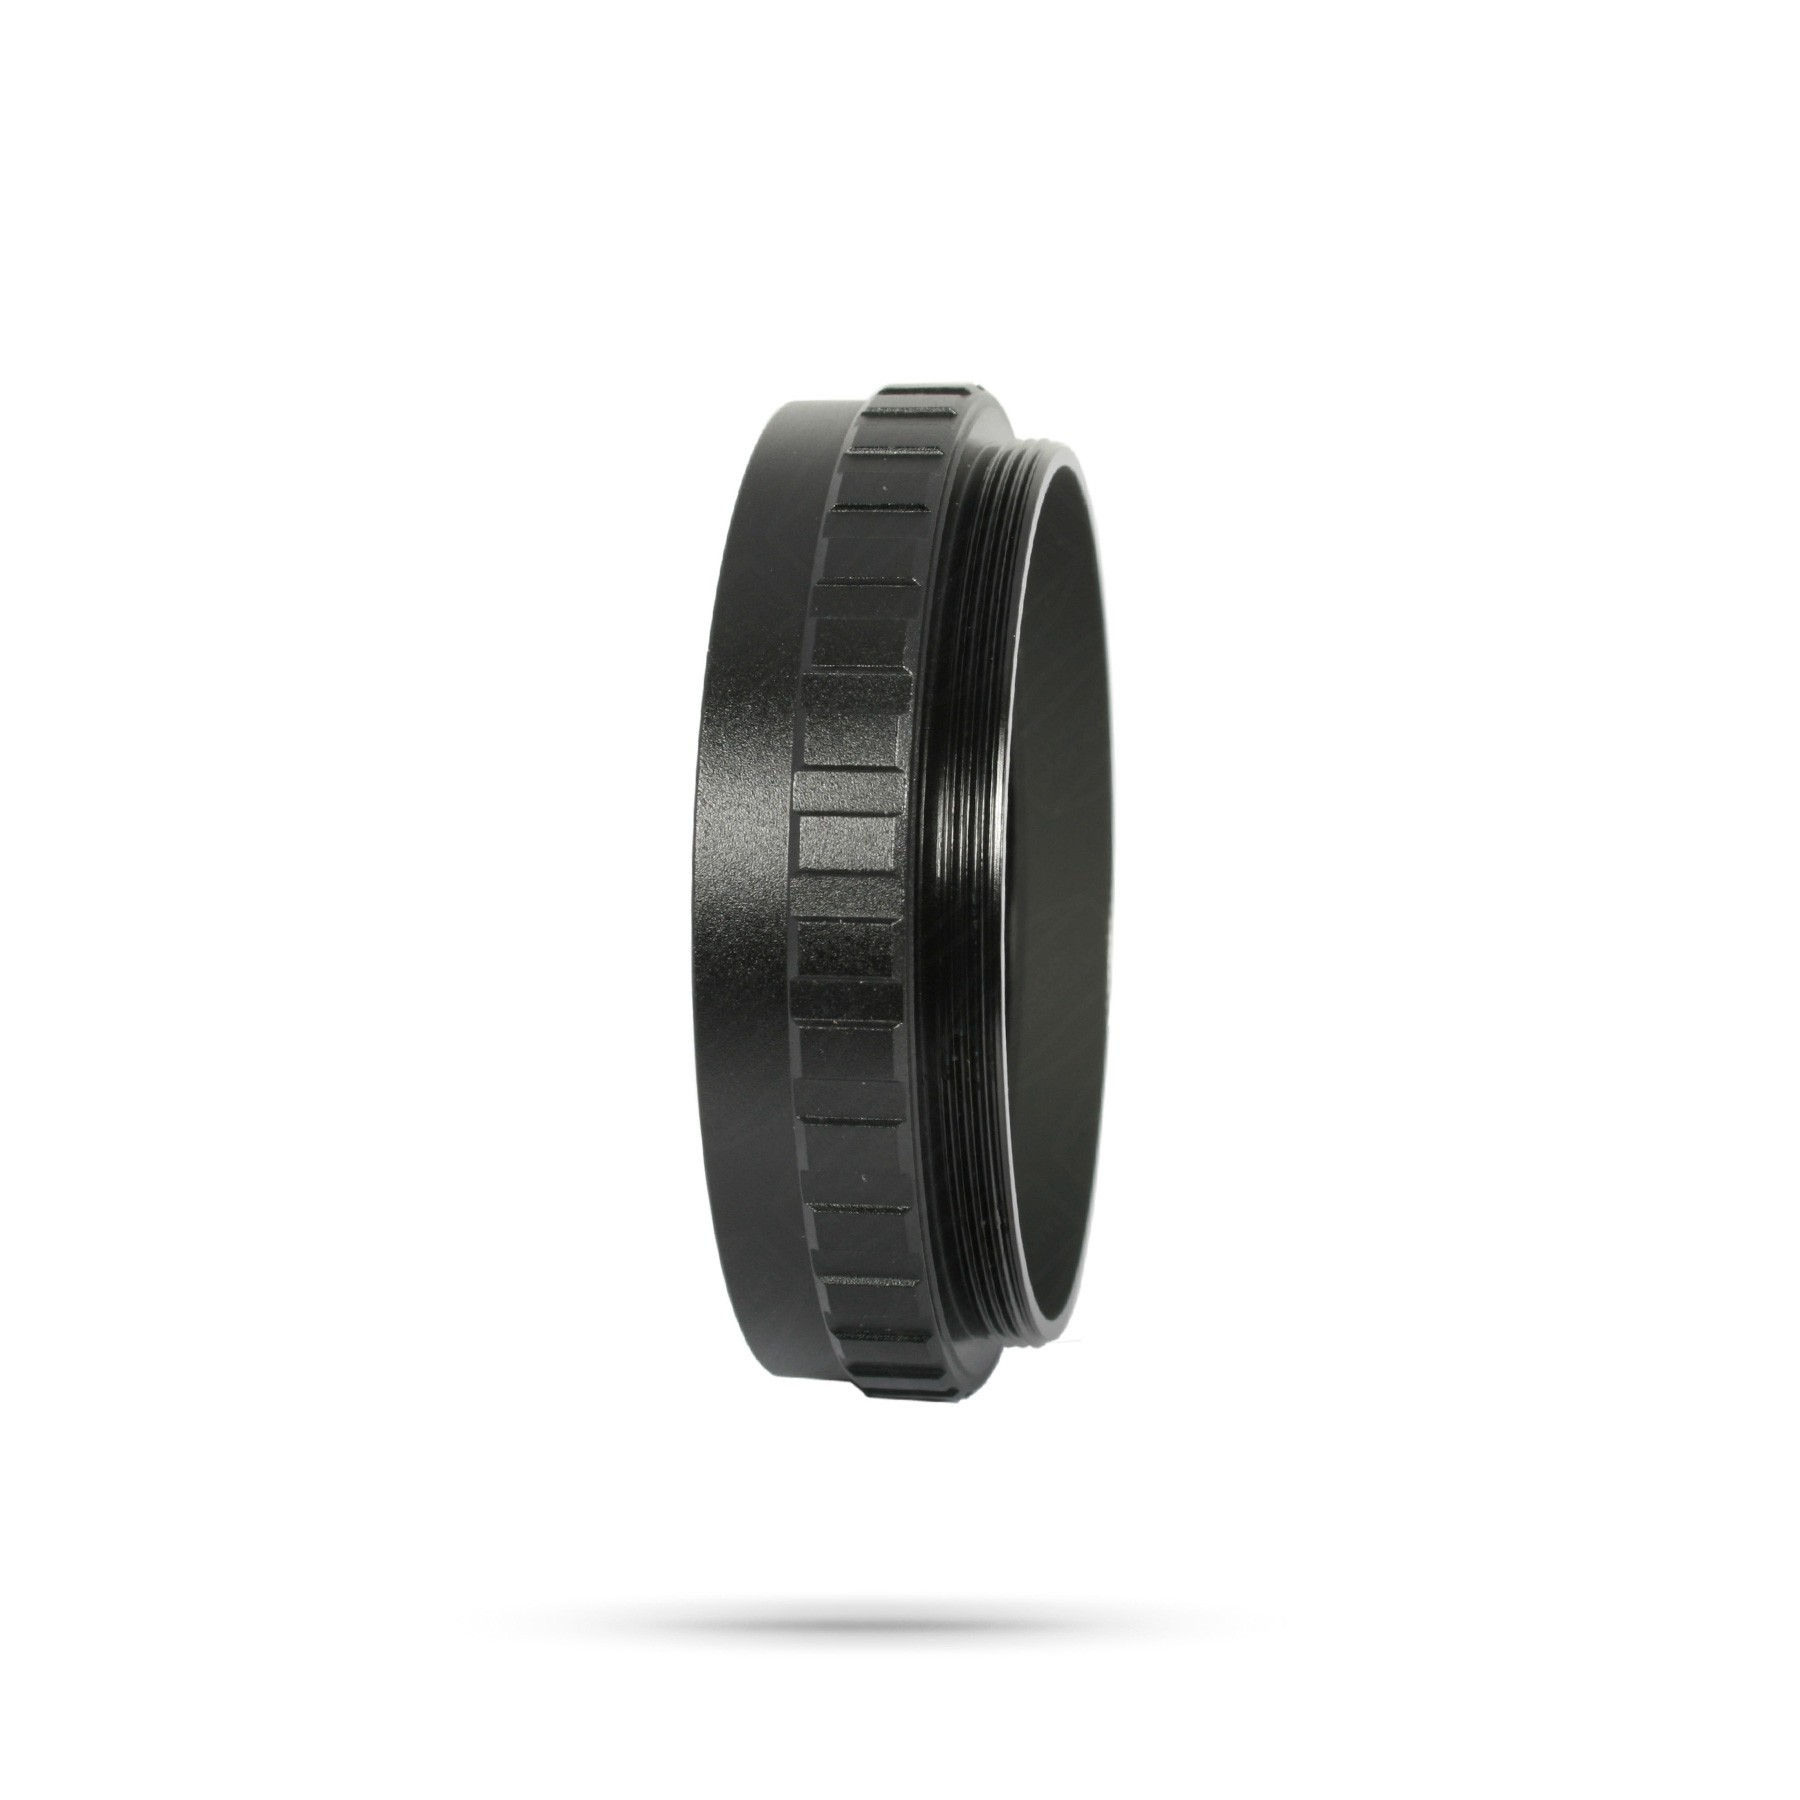 Adapter M68m (Zeiss) / 2.7''f (AP) - Change-ring, converts existing M68 Zeiss male thread into AP 2,7'' female thread